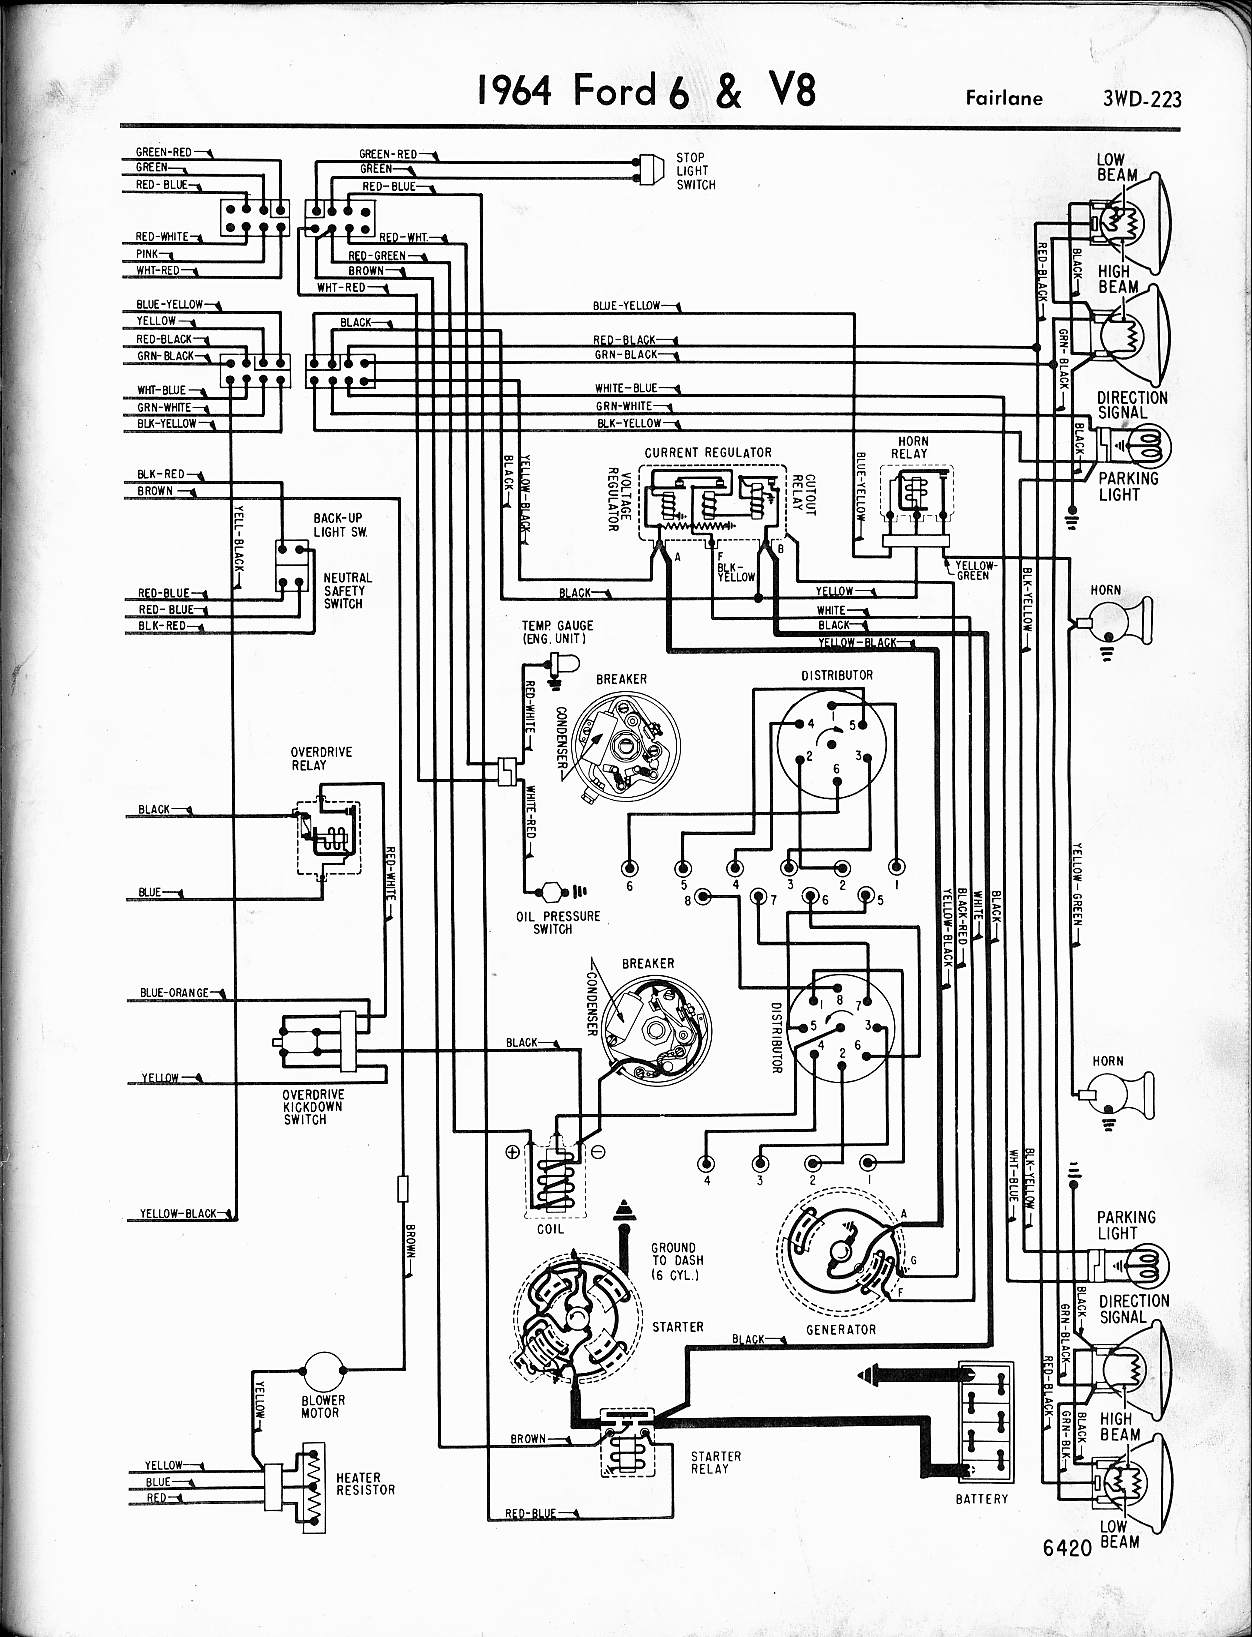 wiring diagrams of 1960 ford v8 fairlane fairlane 500 and galaxie